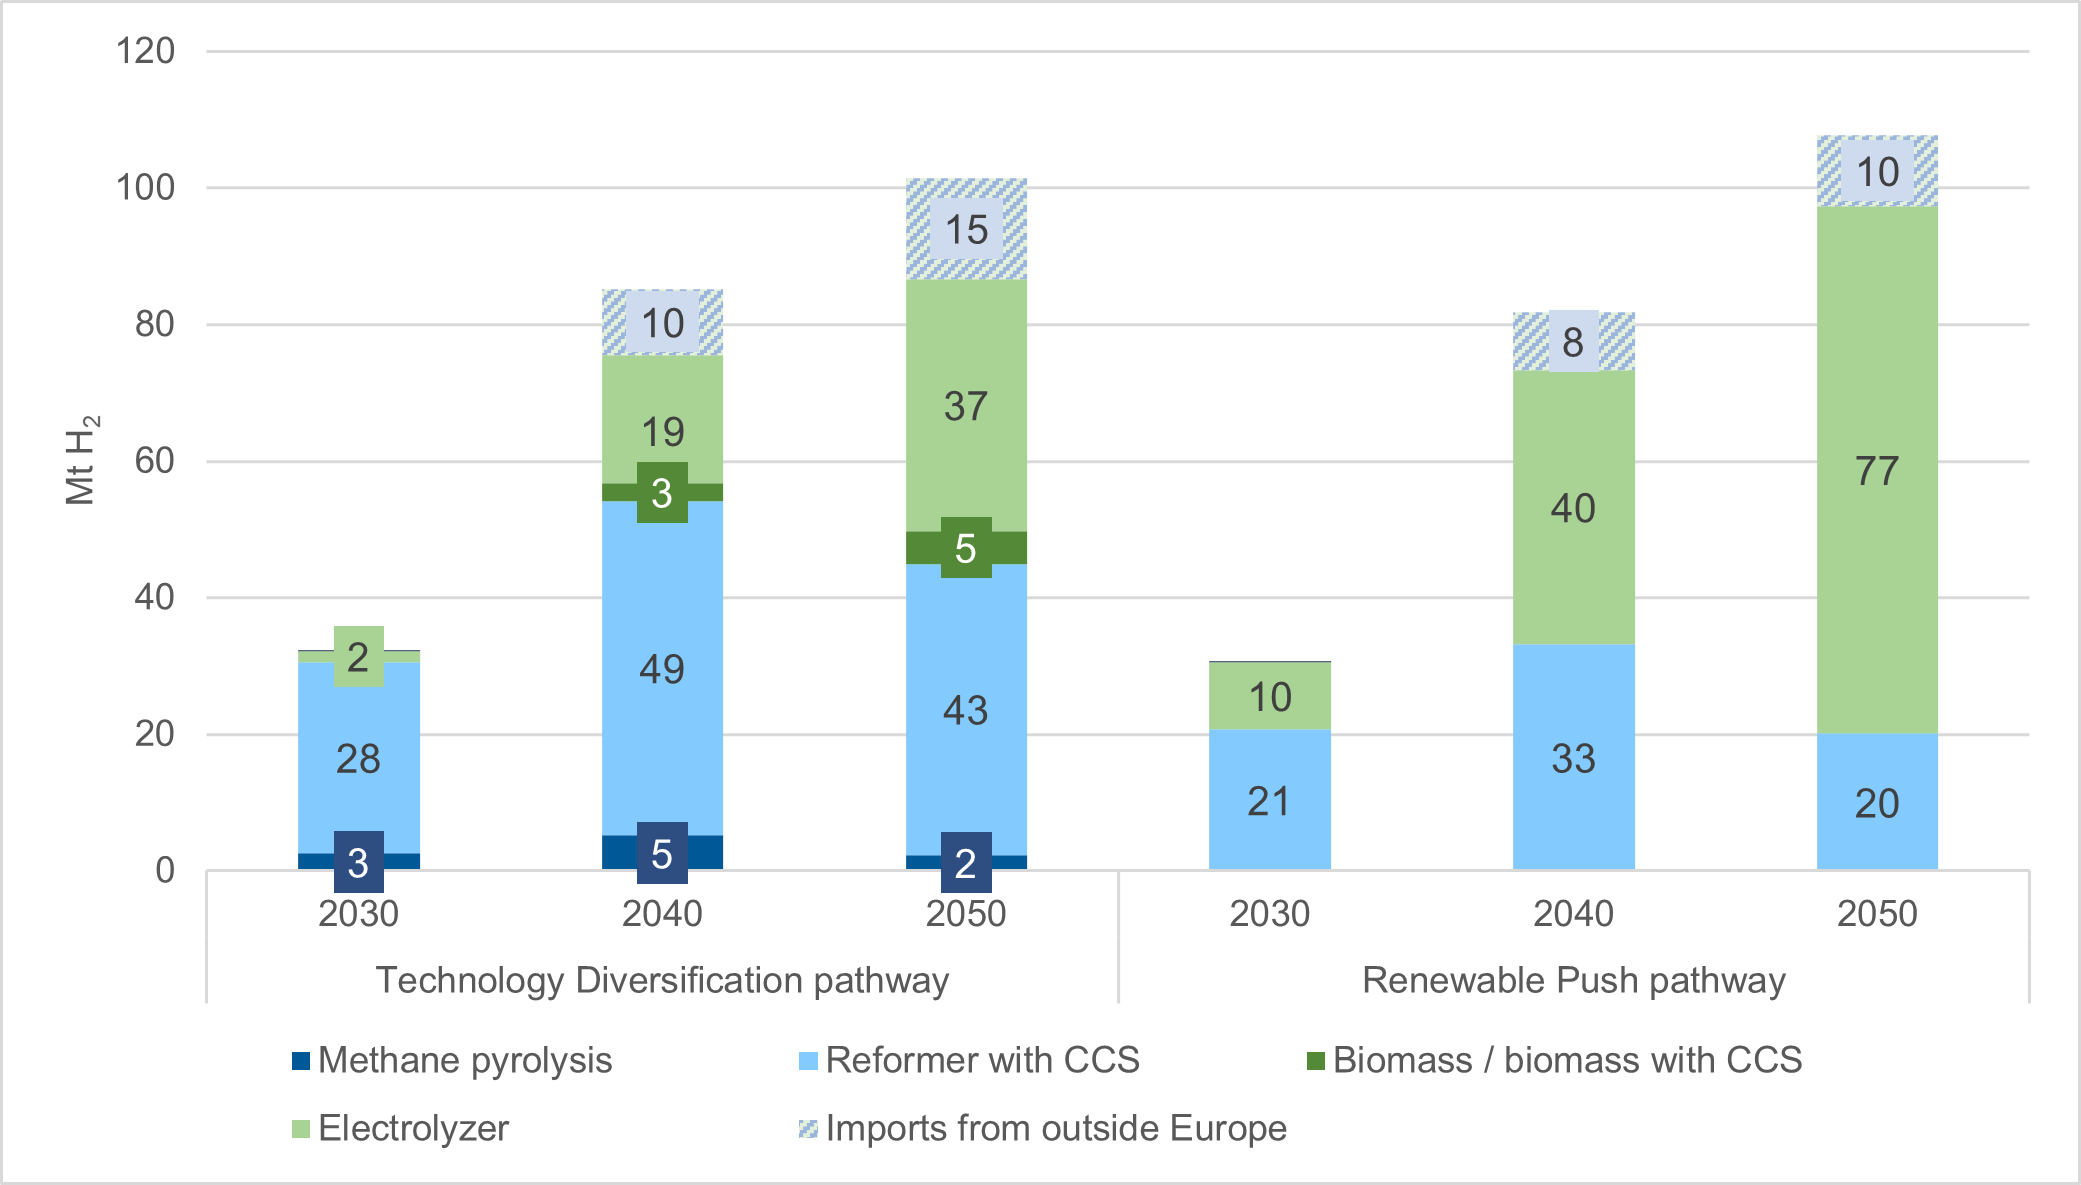 Evolution of hydrogen production in Europe in the Technology Diversification and Renewable Push pathways, 2016 to 2050.